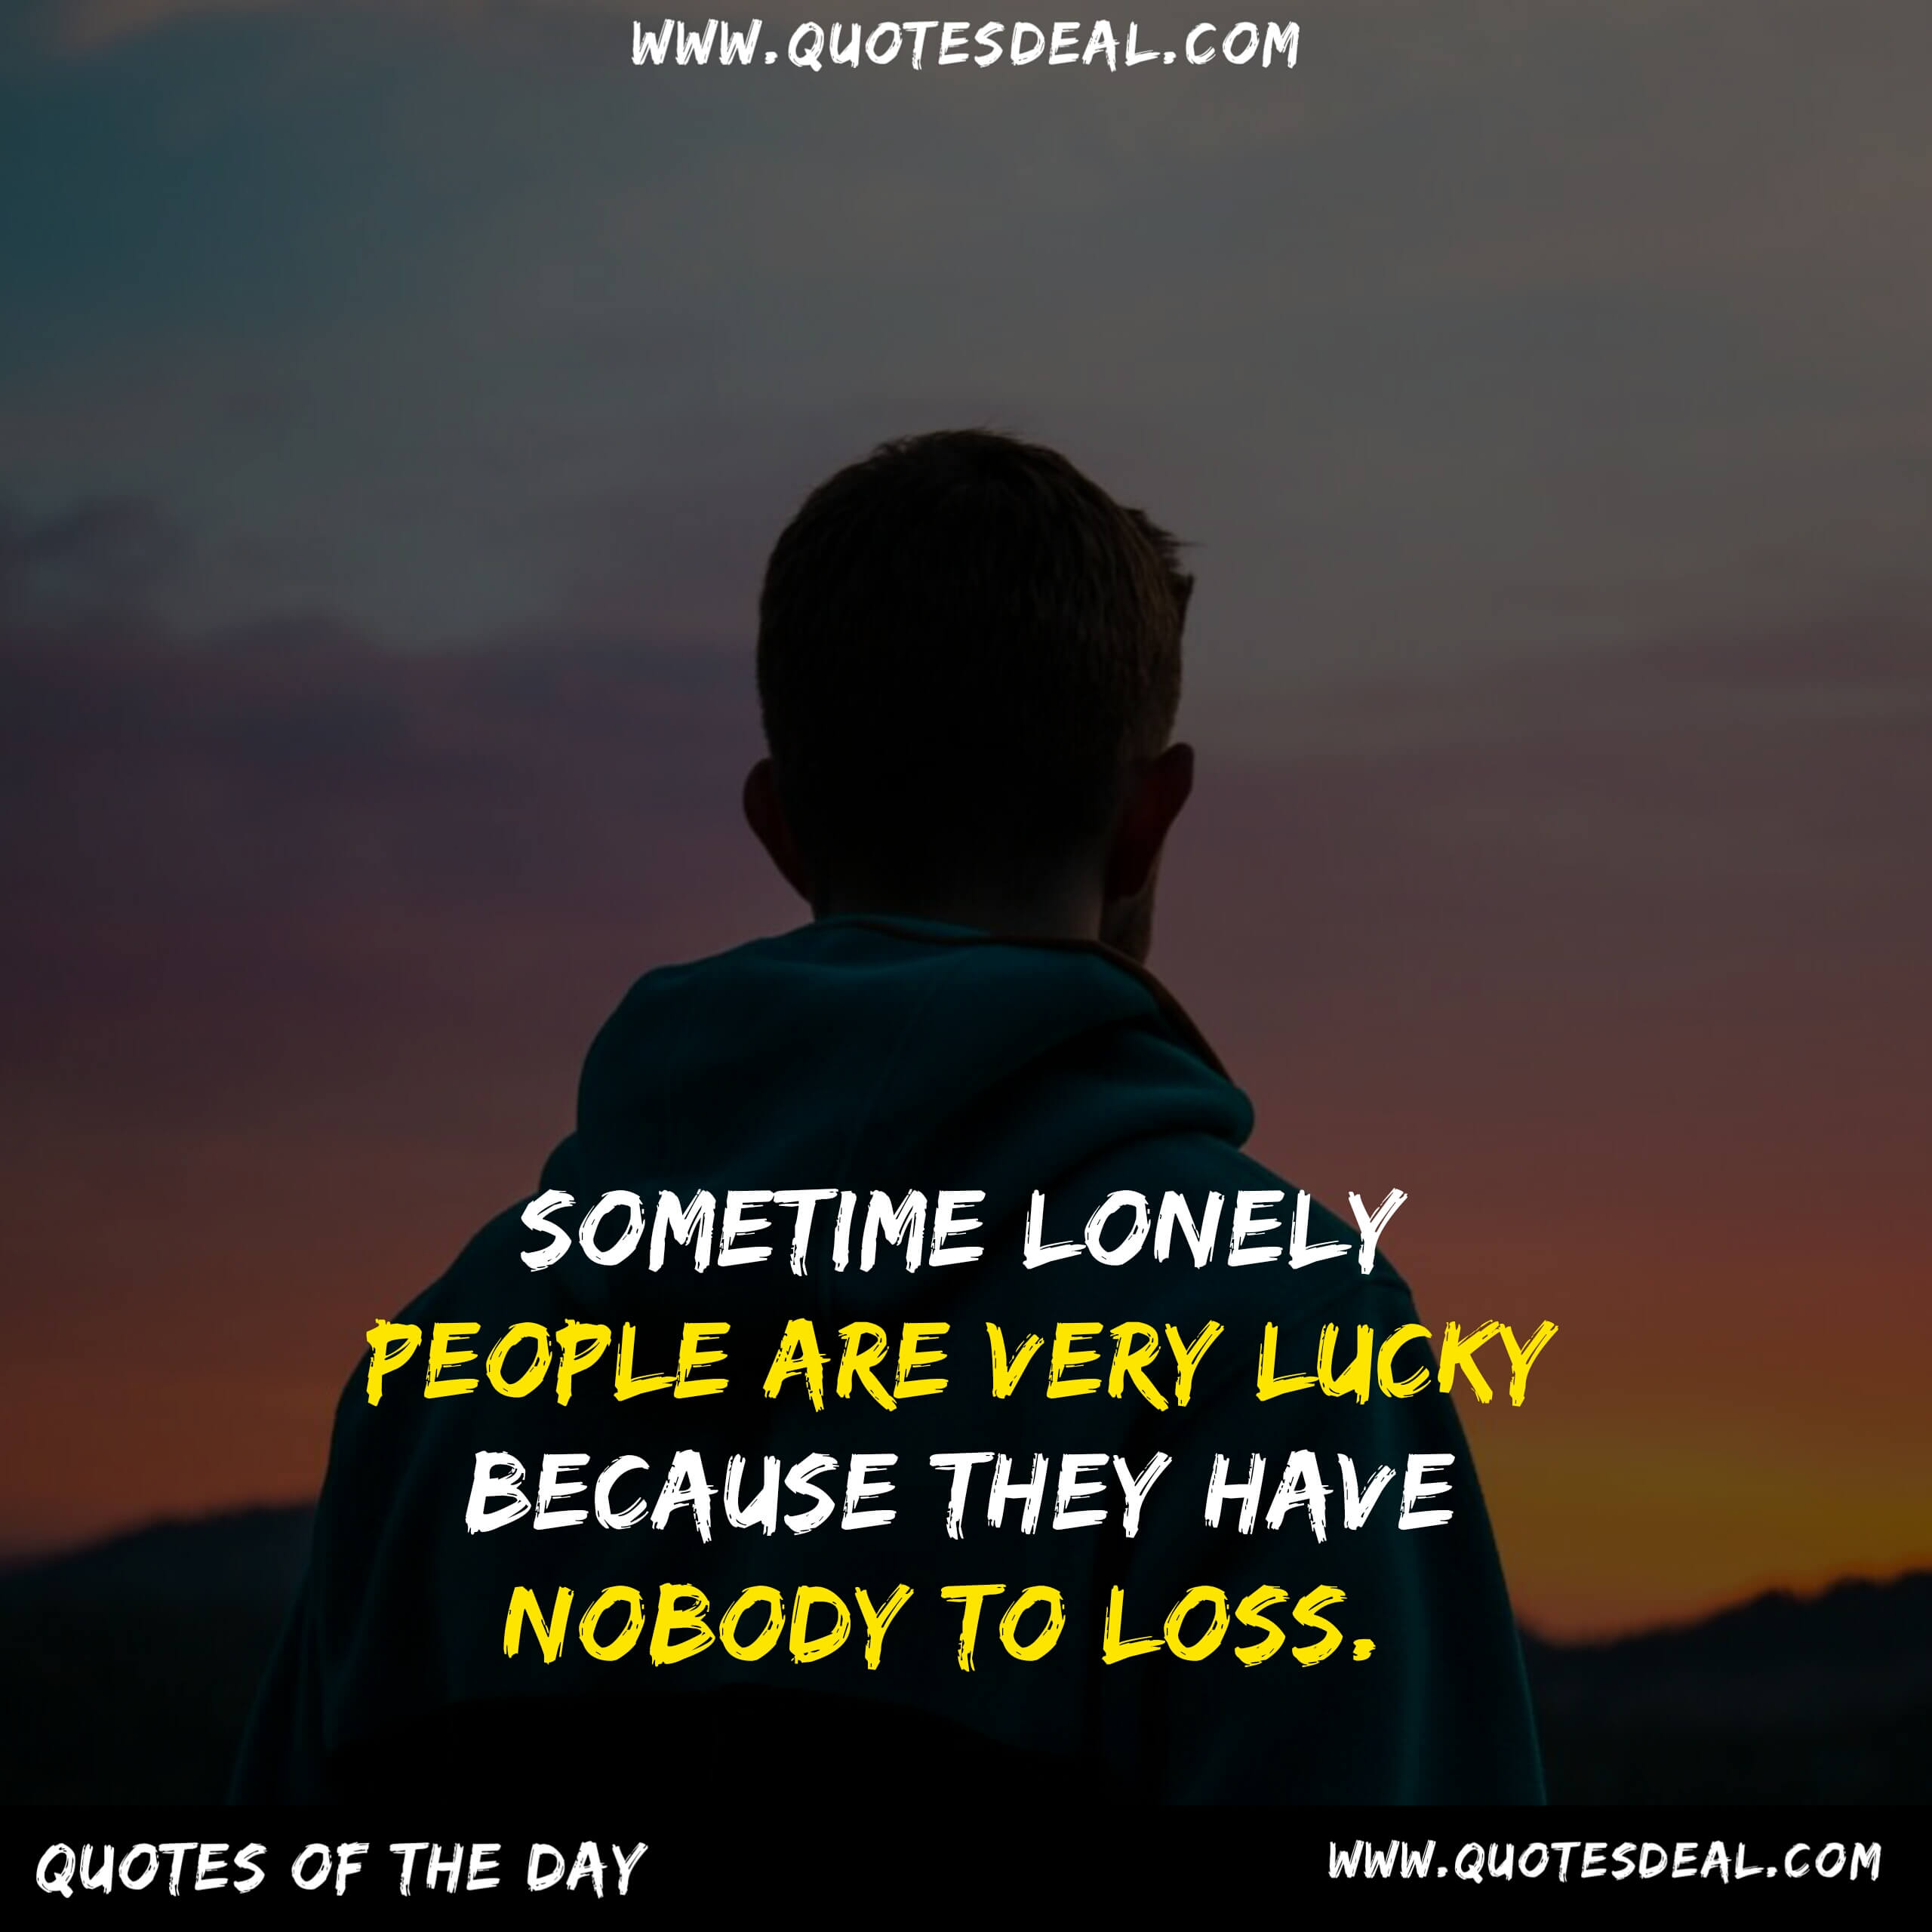 Sometime lonely people